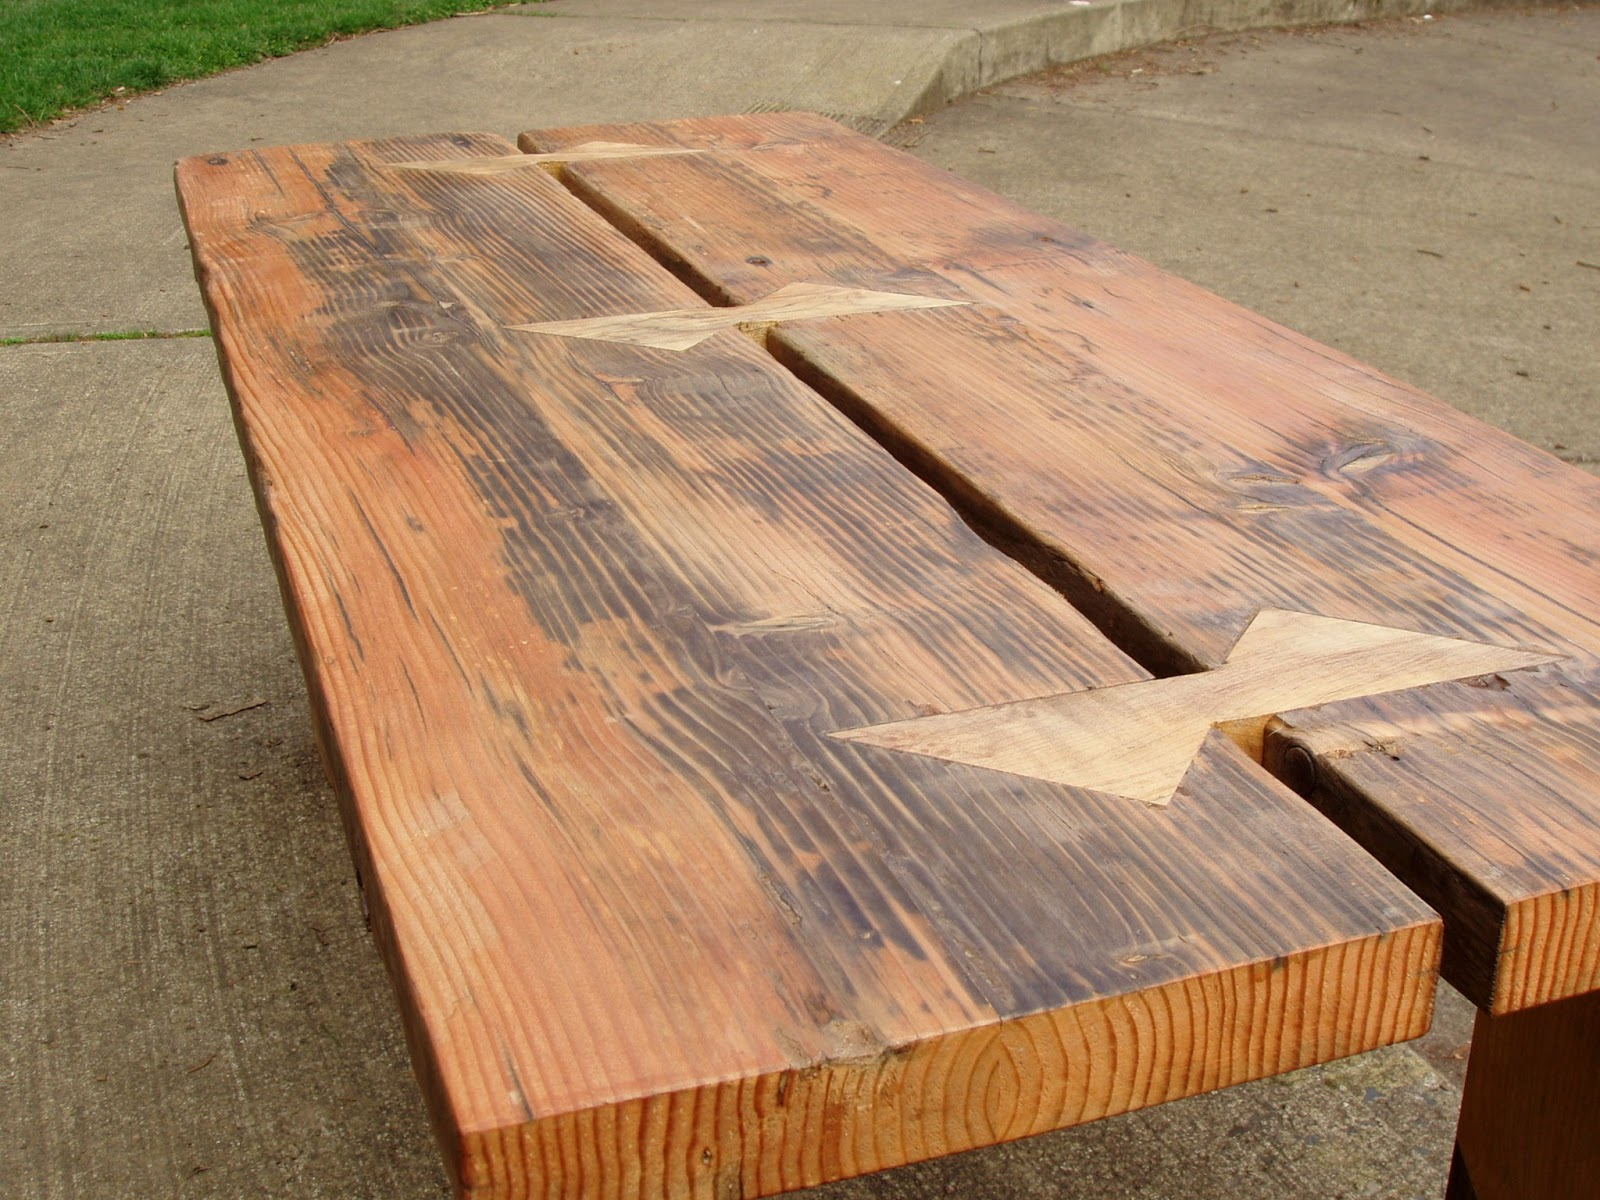 Driftedge woodworking reclaimed wood furniture Reclaimed woods